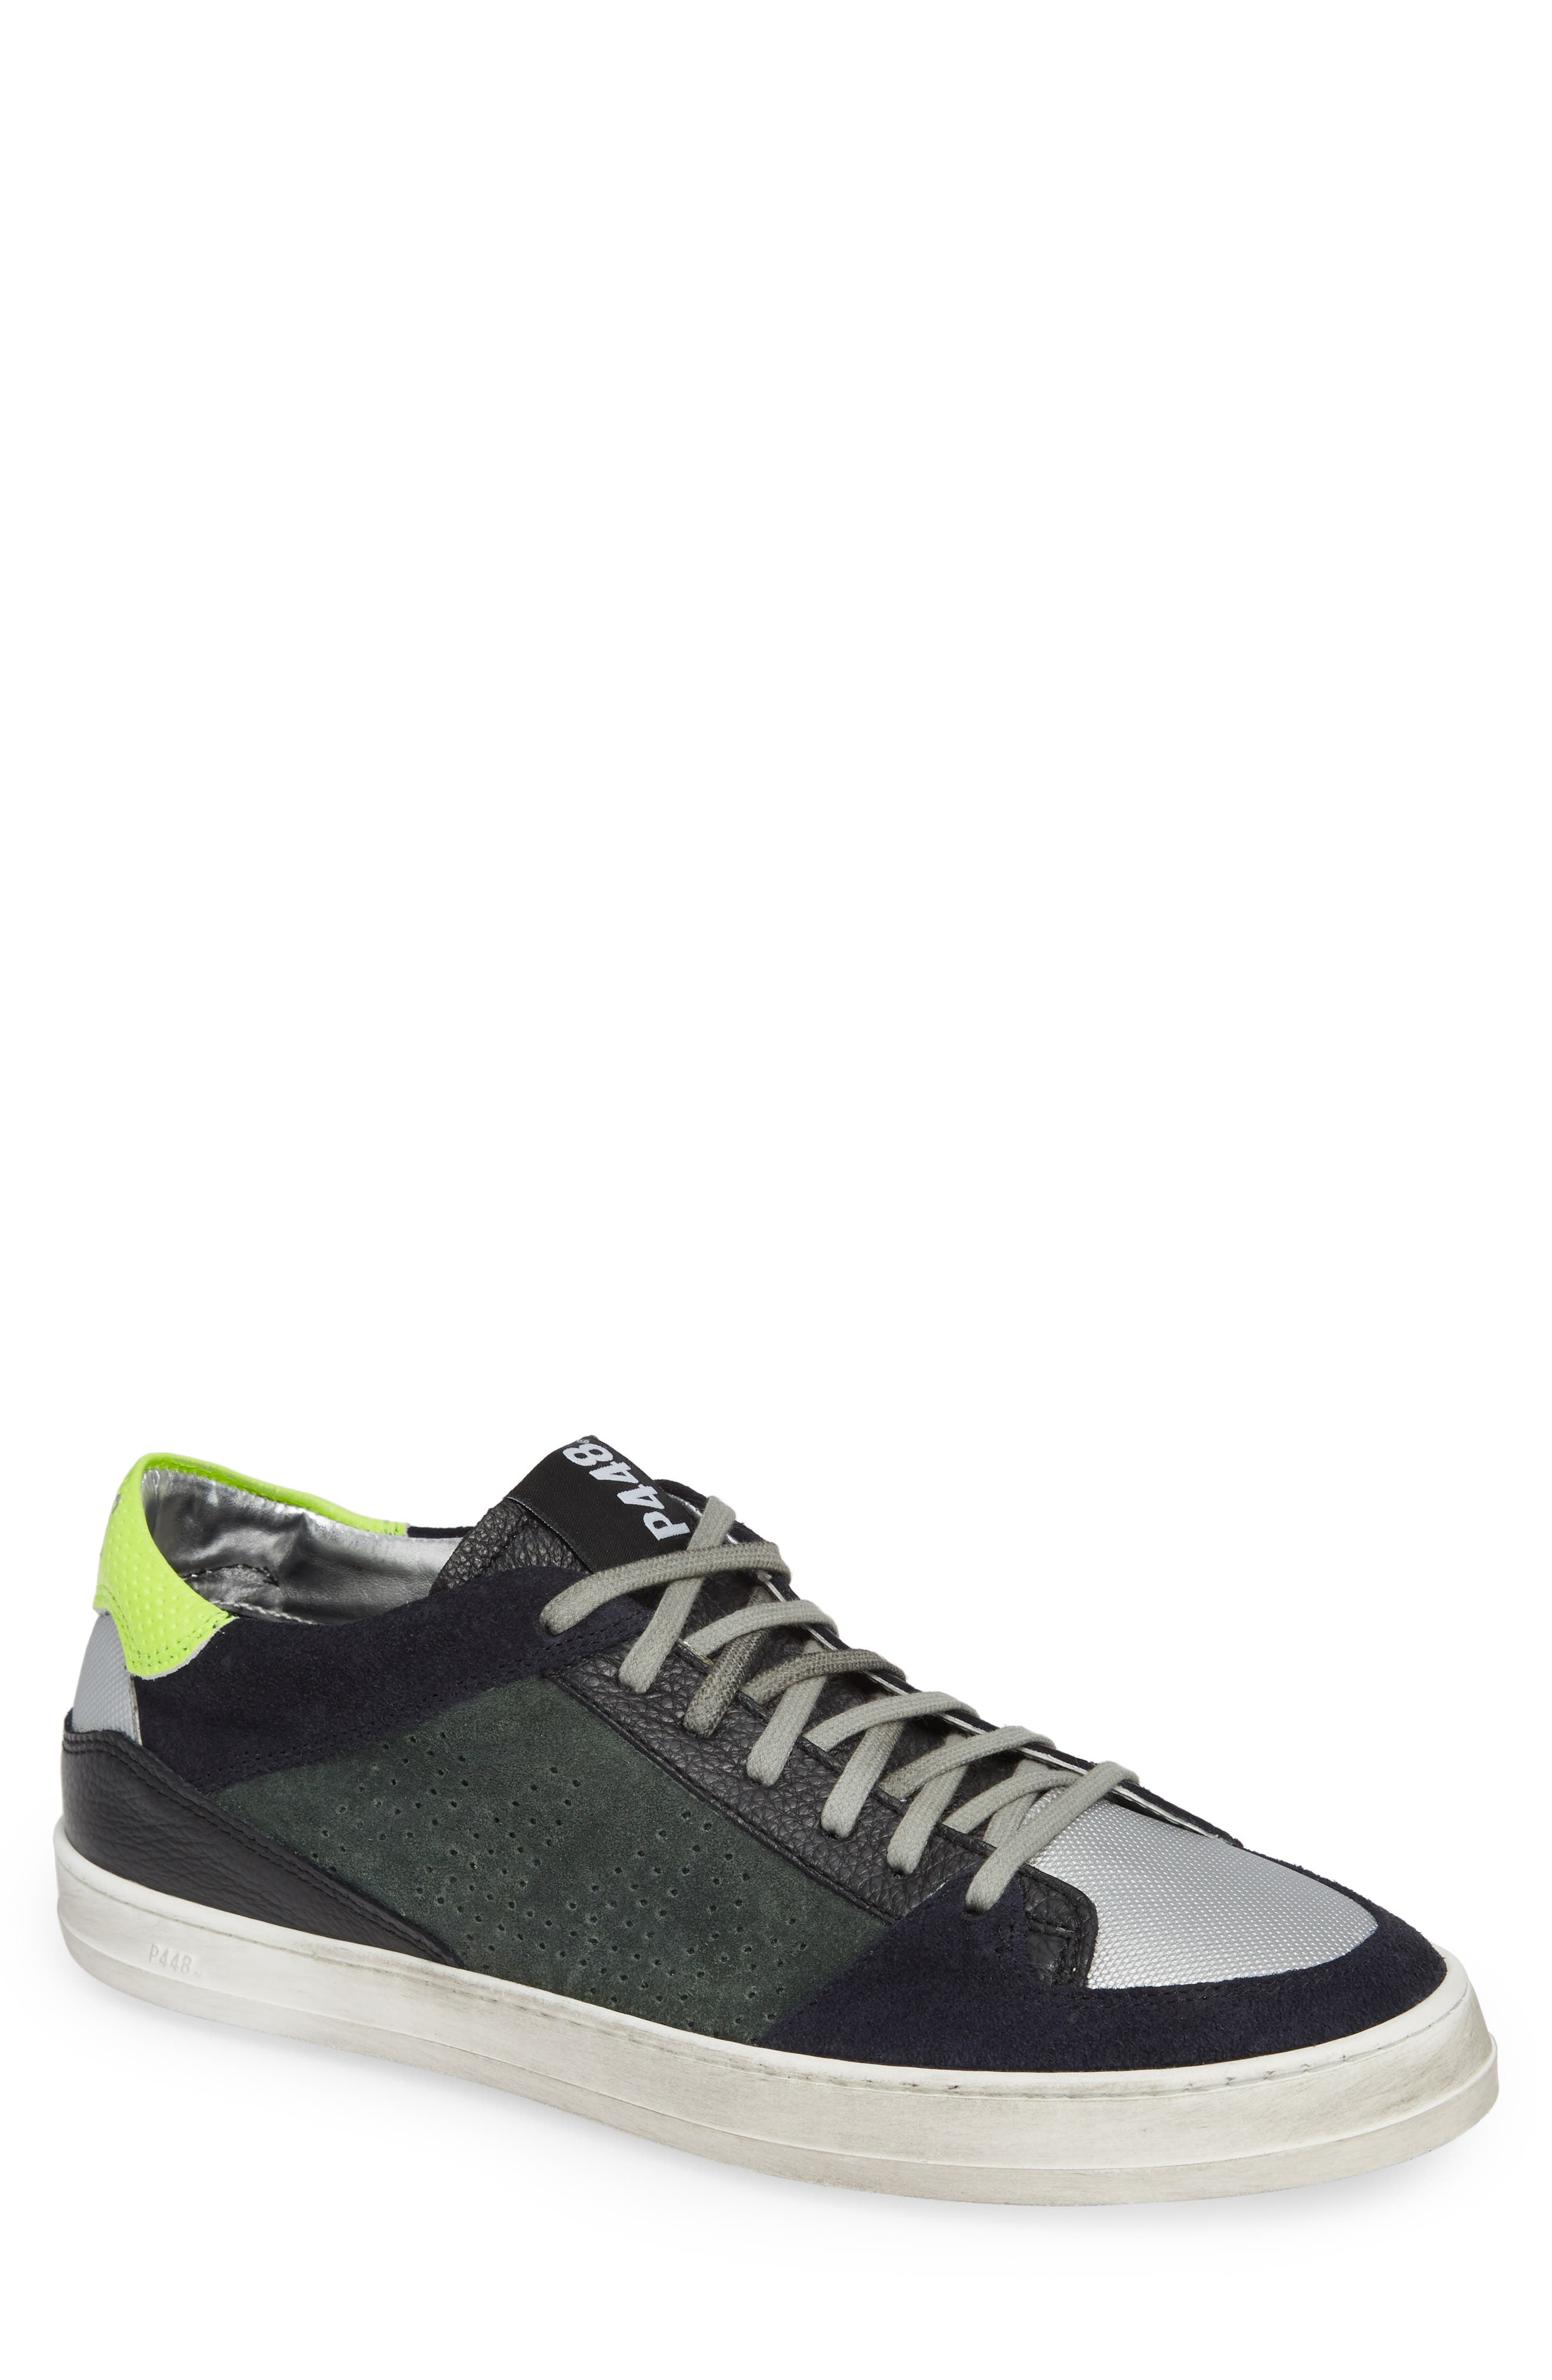 A8Queens Sneaker,                         Main,                         color, WILLOW GREEN